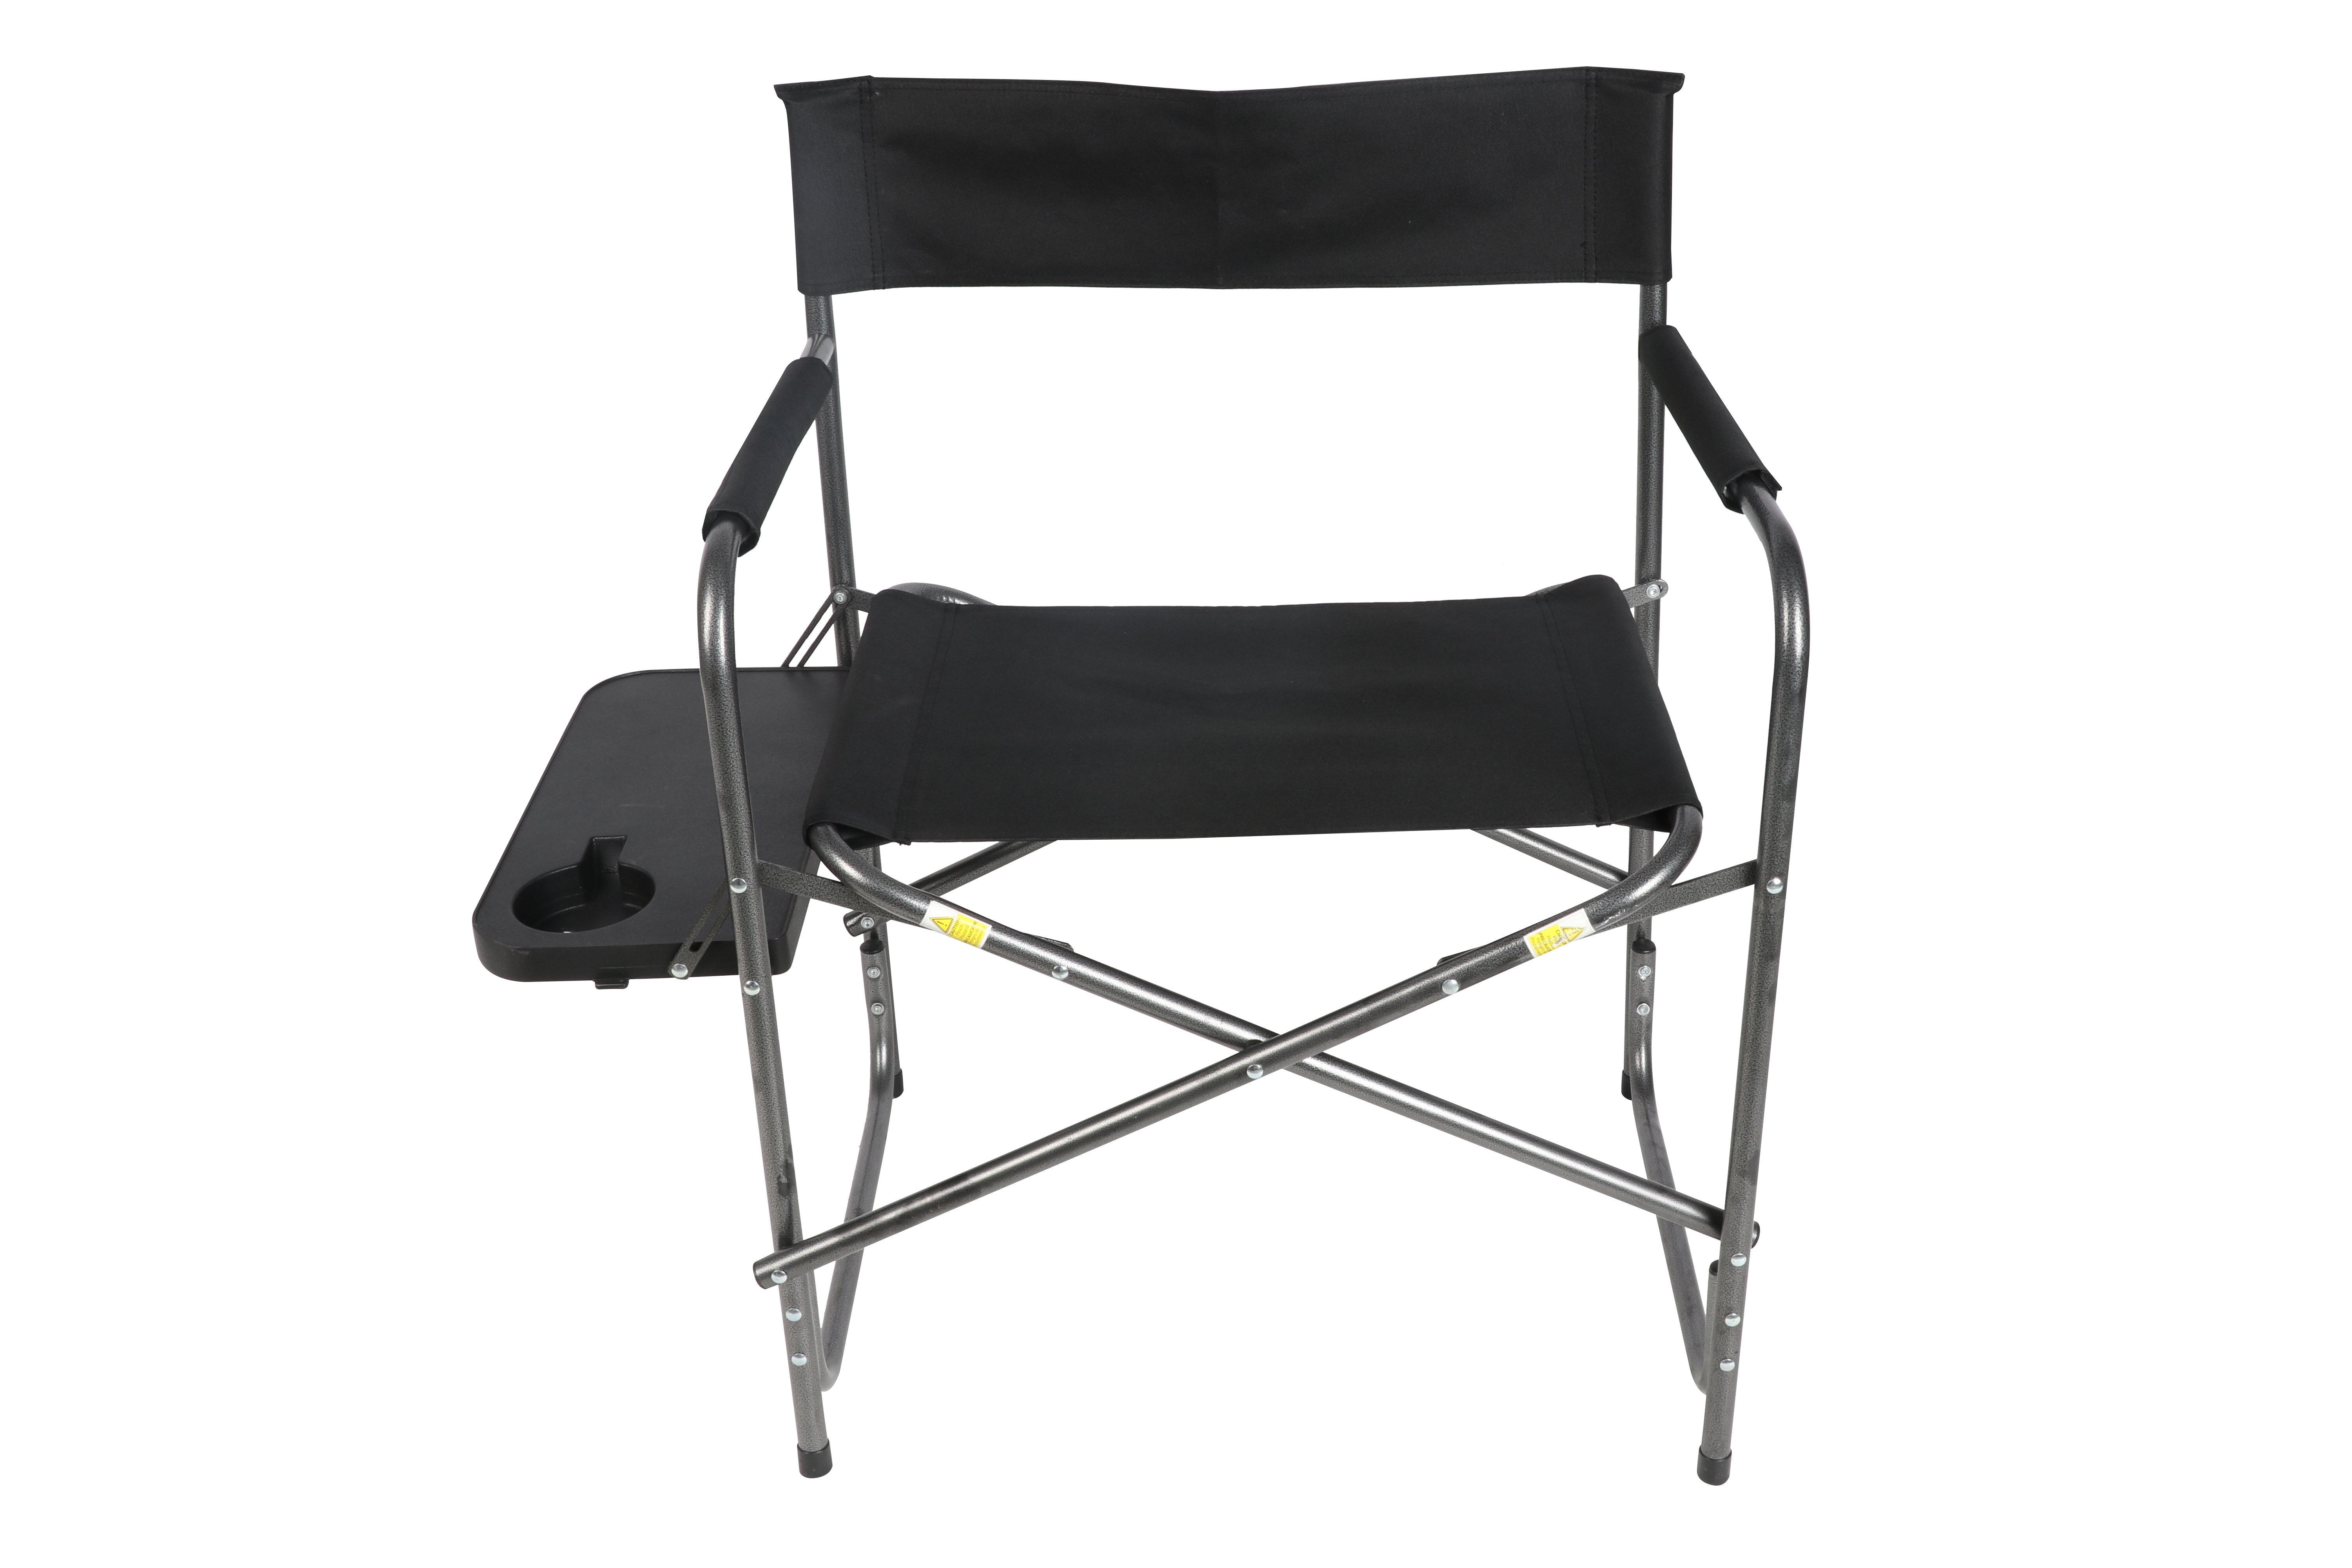 Ozark Trail Directoru0027s Chair With Foldout Side Table, Black